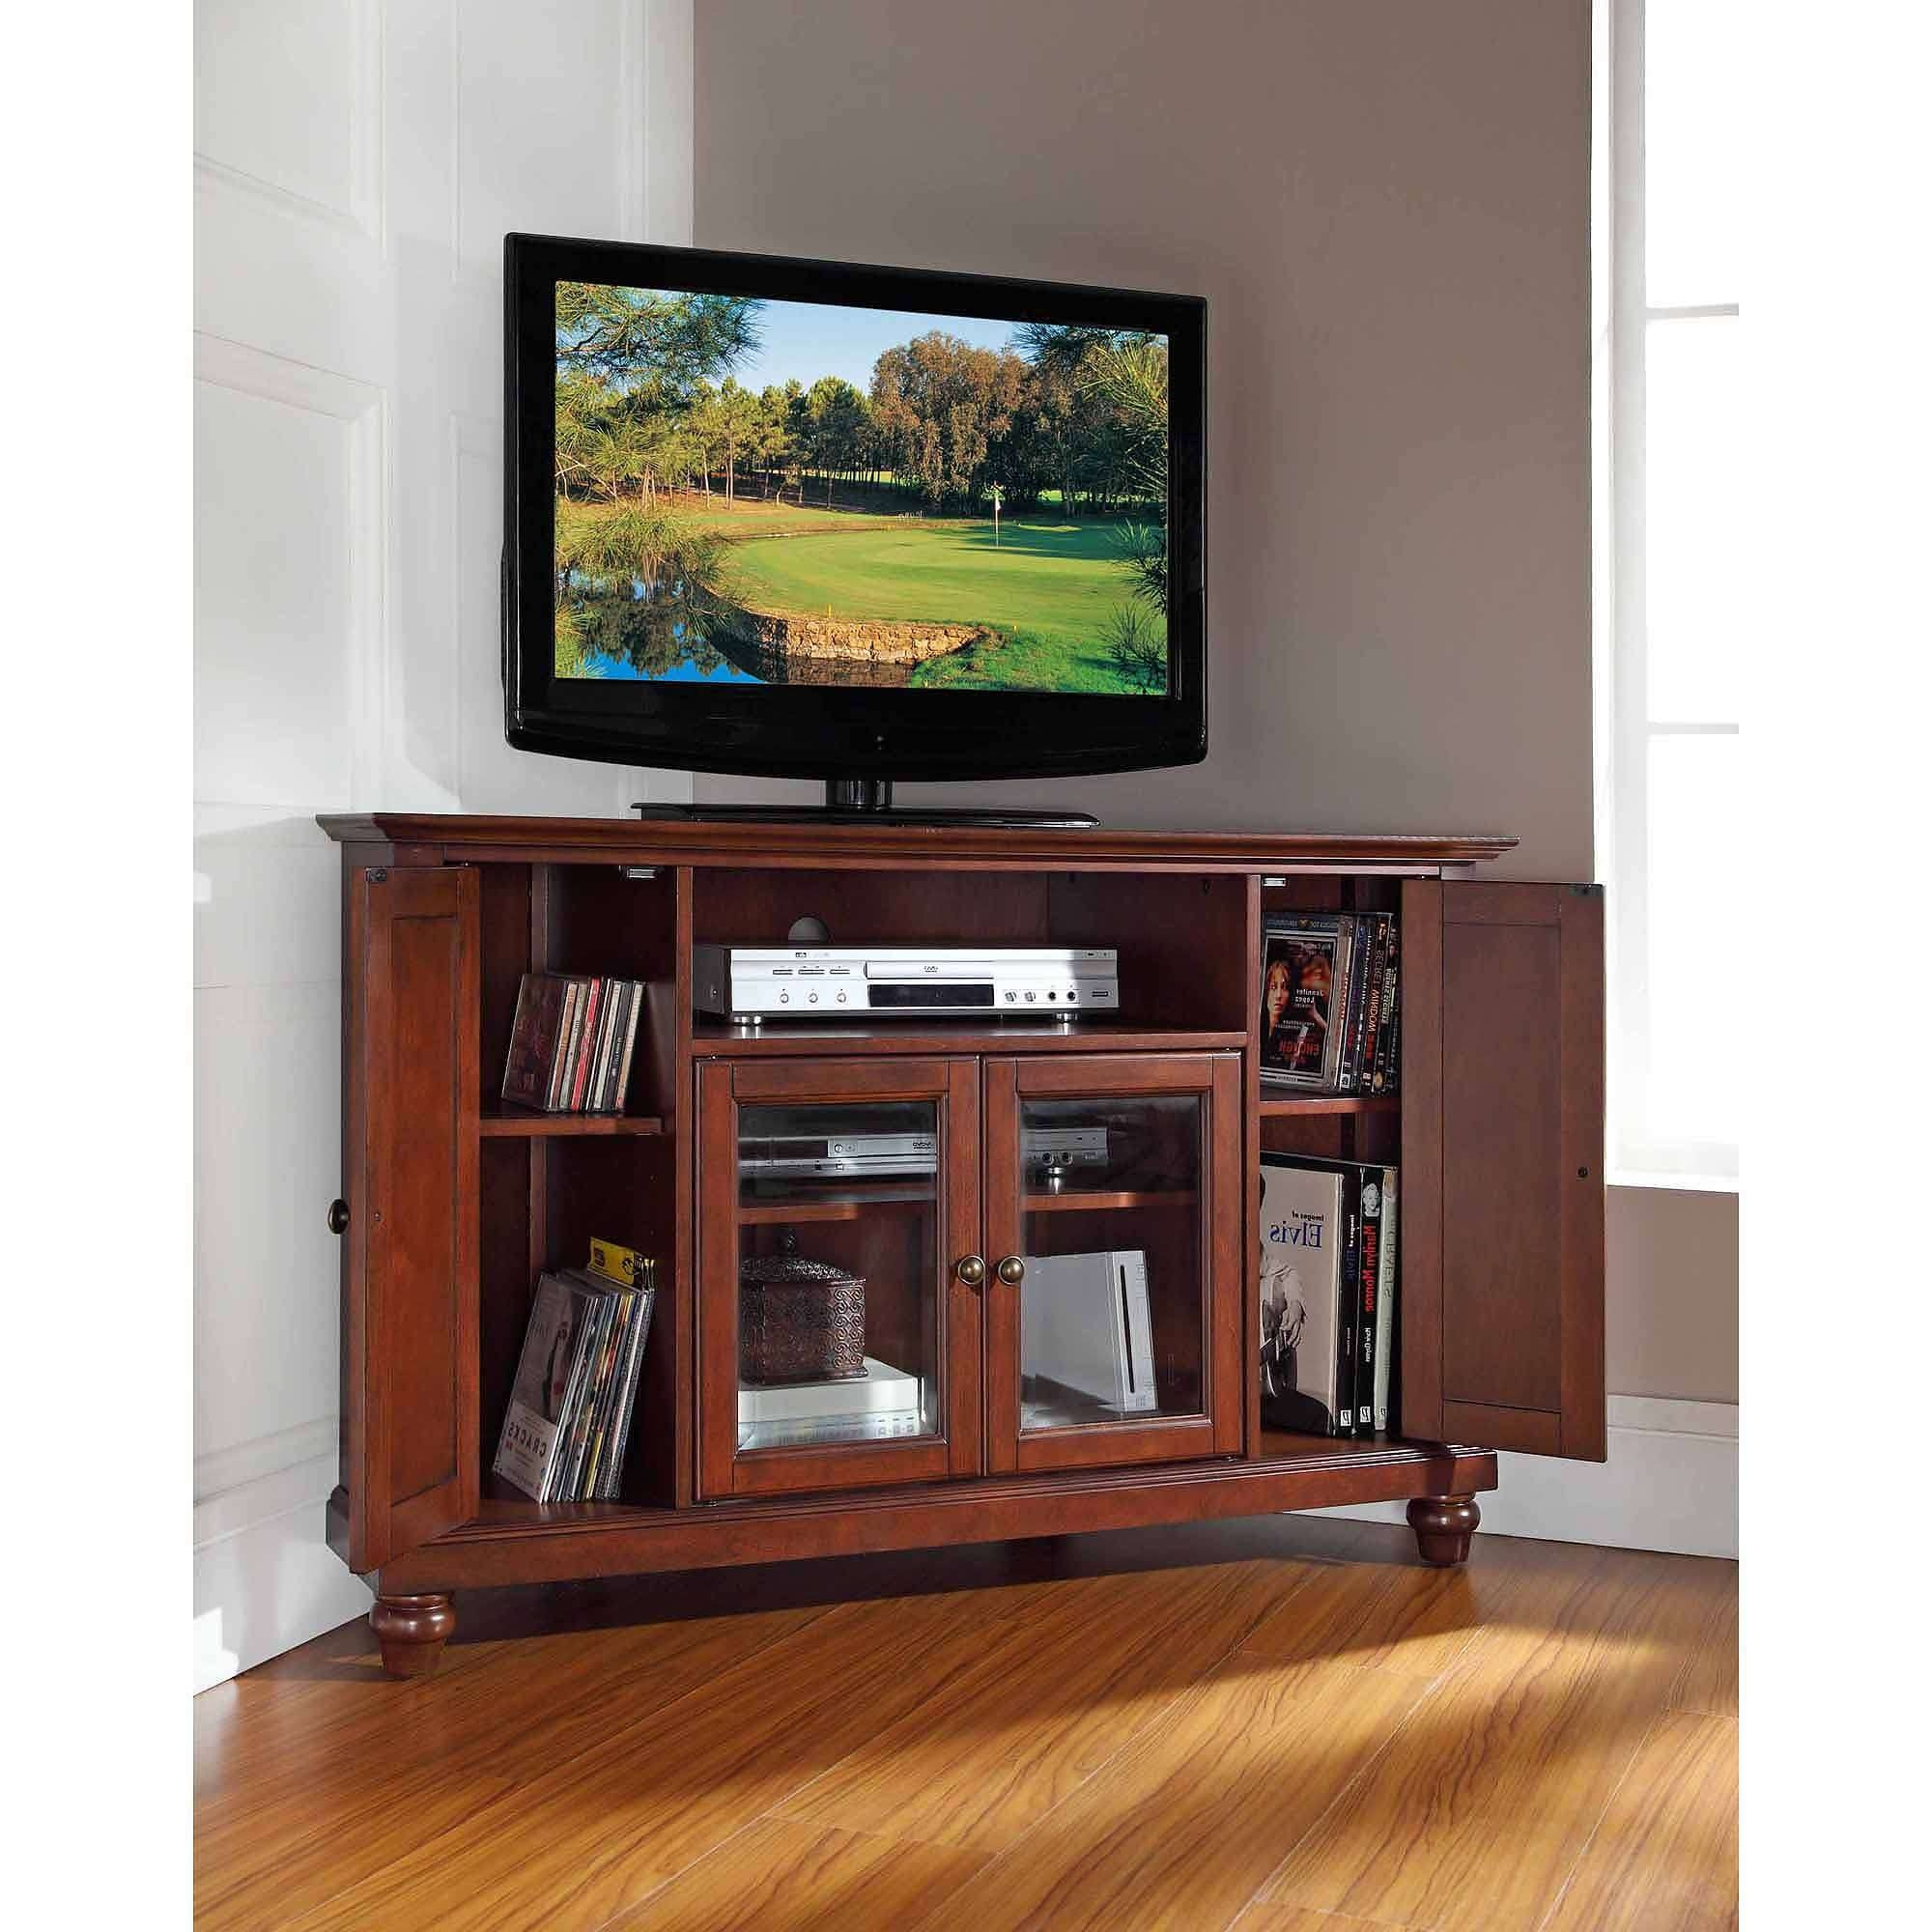 Tv : 41 Stunning 40 Inch Tv Stand Wood Photos Concept Stunning Throughout Real Wood Corner Tv Stands (View 12 of 15)